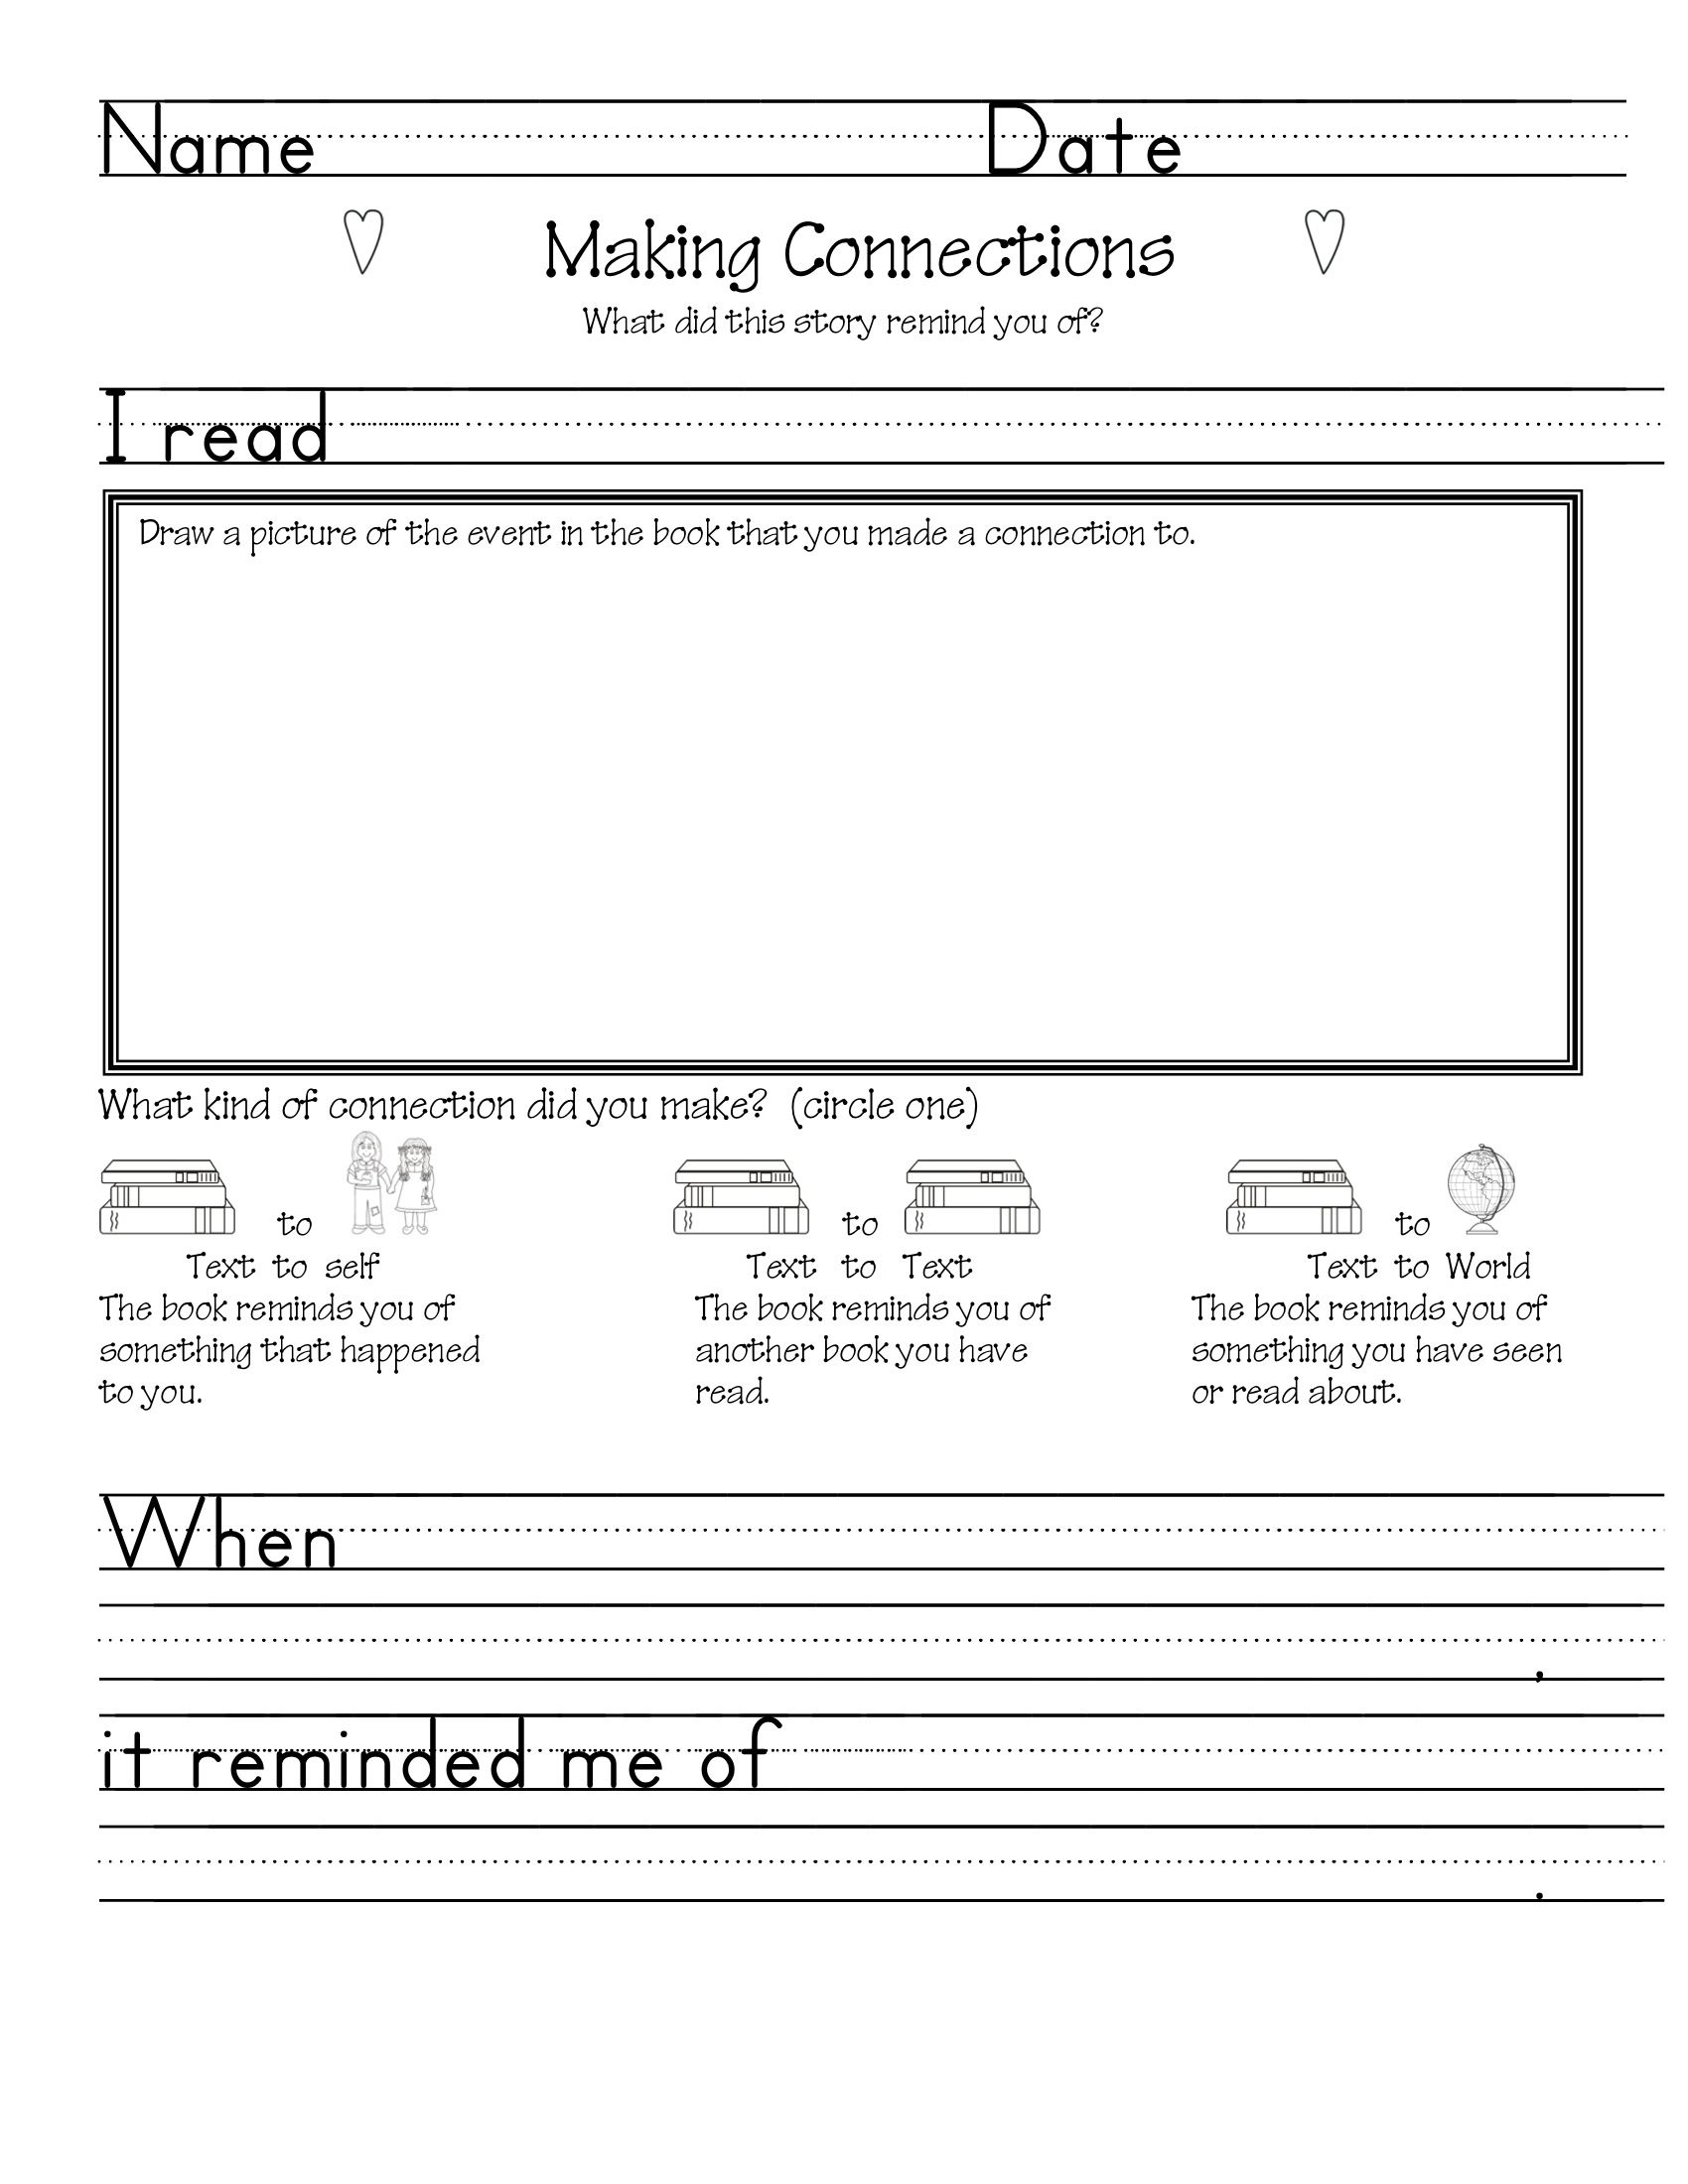 This Is A Reading Comprehension Worksheet Intended To Help Readers Make Connections That Are